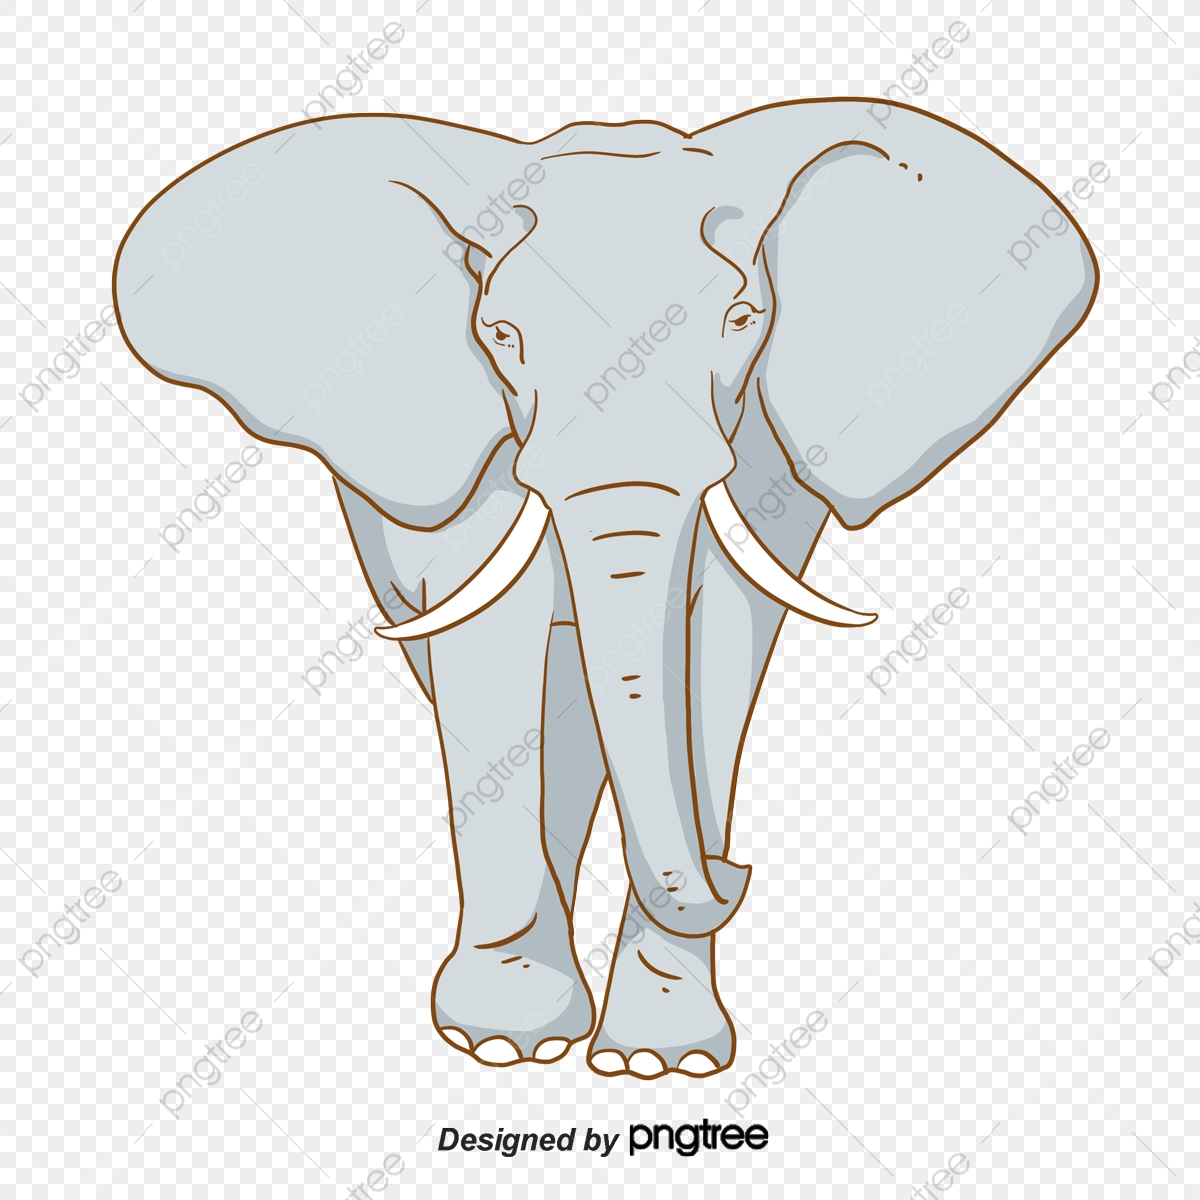 Grey Elephant Clipart Clip Art Animal Cartoon Png Transparent Clipart Image And Psd File For Free Download Find high quality indian wedding clipart, all png clipart images with transparent backgroud can be download for free! https pngtree com freepng grey elephant clipart 4153168 html